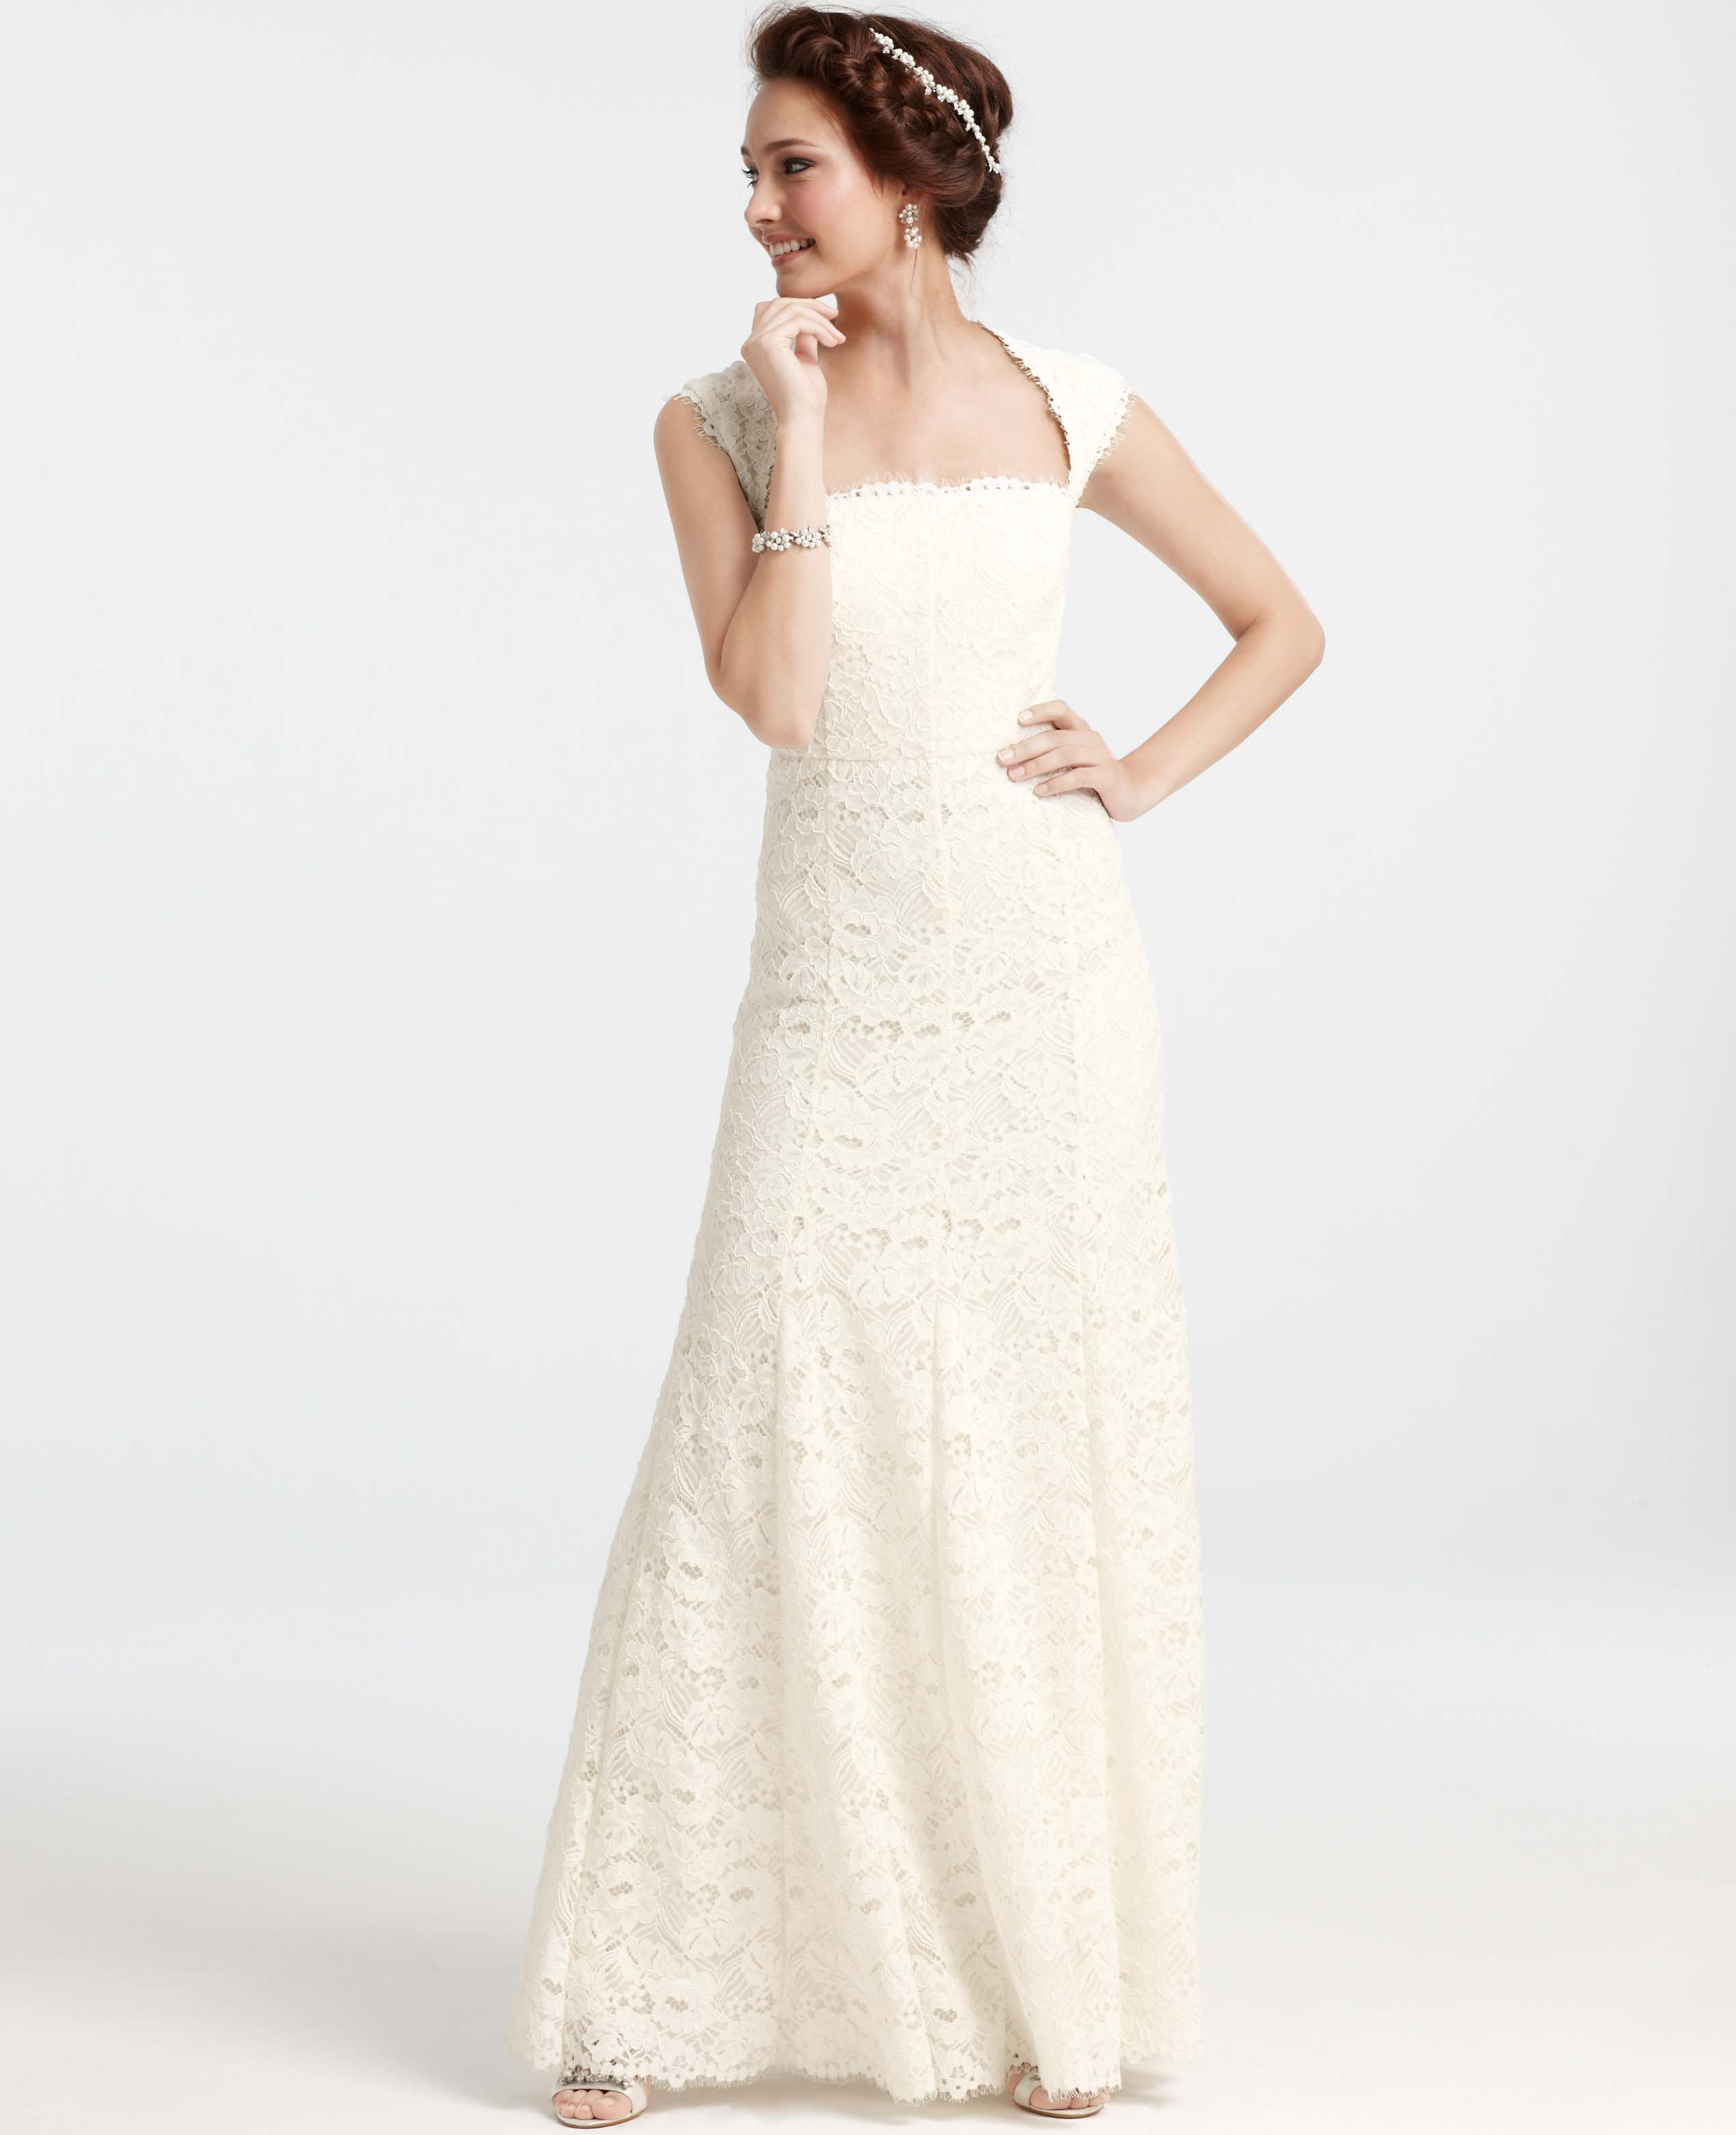 Lyst - Ann Taylor Isabella Lace Wedding Dress in White